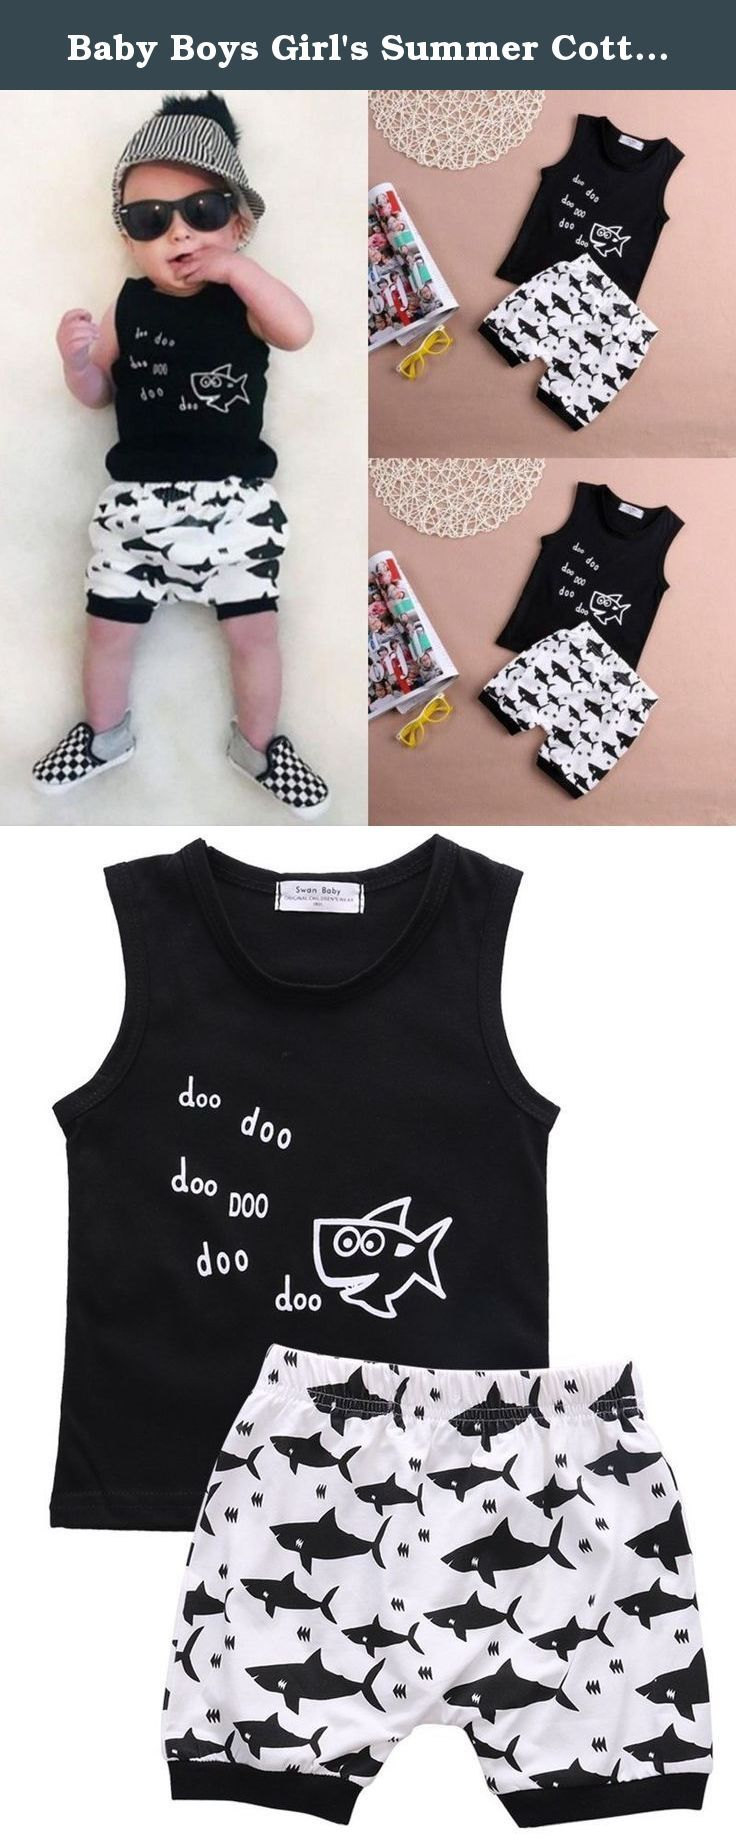 5e35361f4 Baby Boys Girl s Summer Cotton Sleeveless Outfits Se…